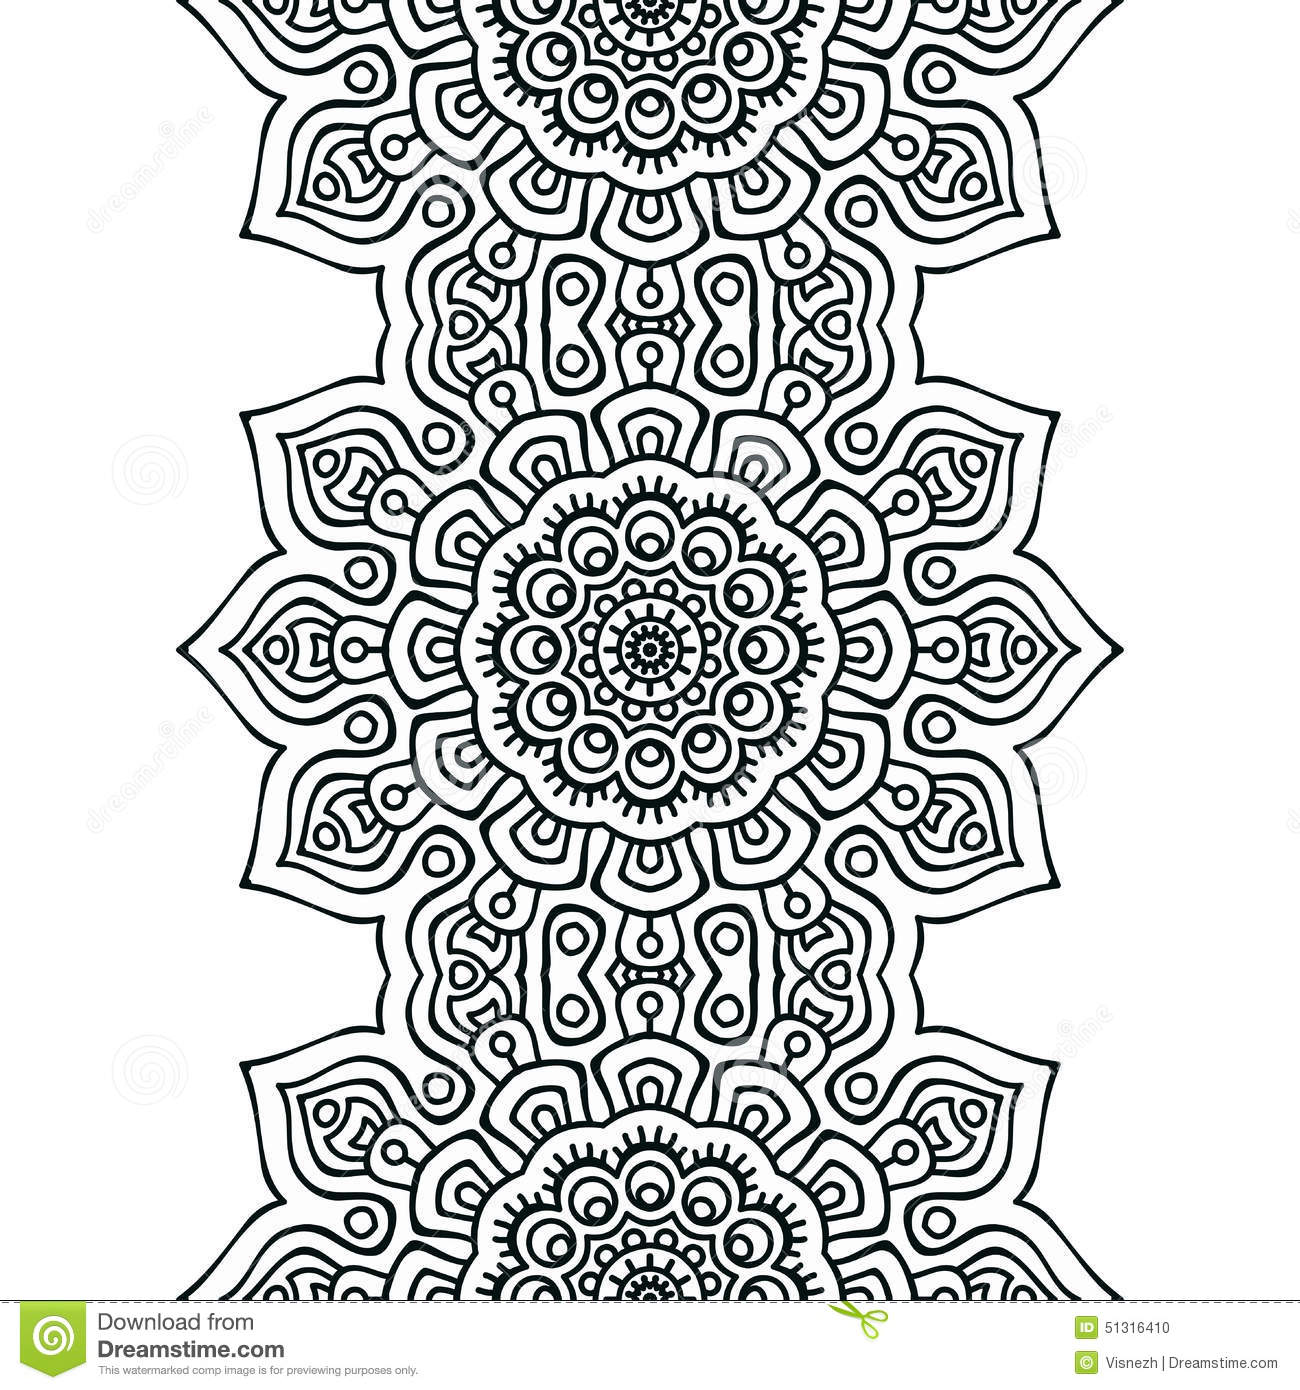 "Search Results for ""Ornament Coloring Pattern"""